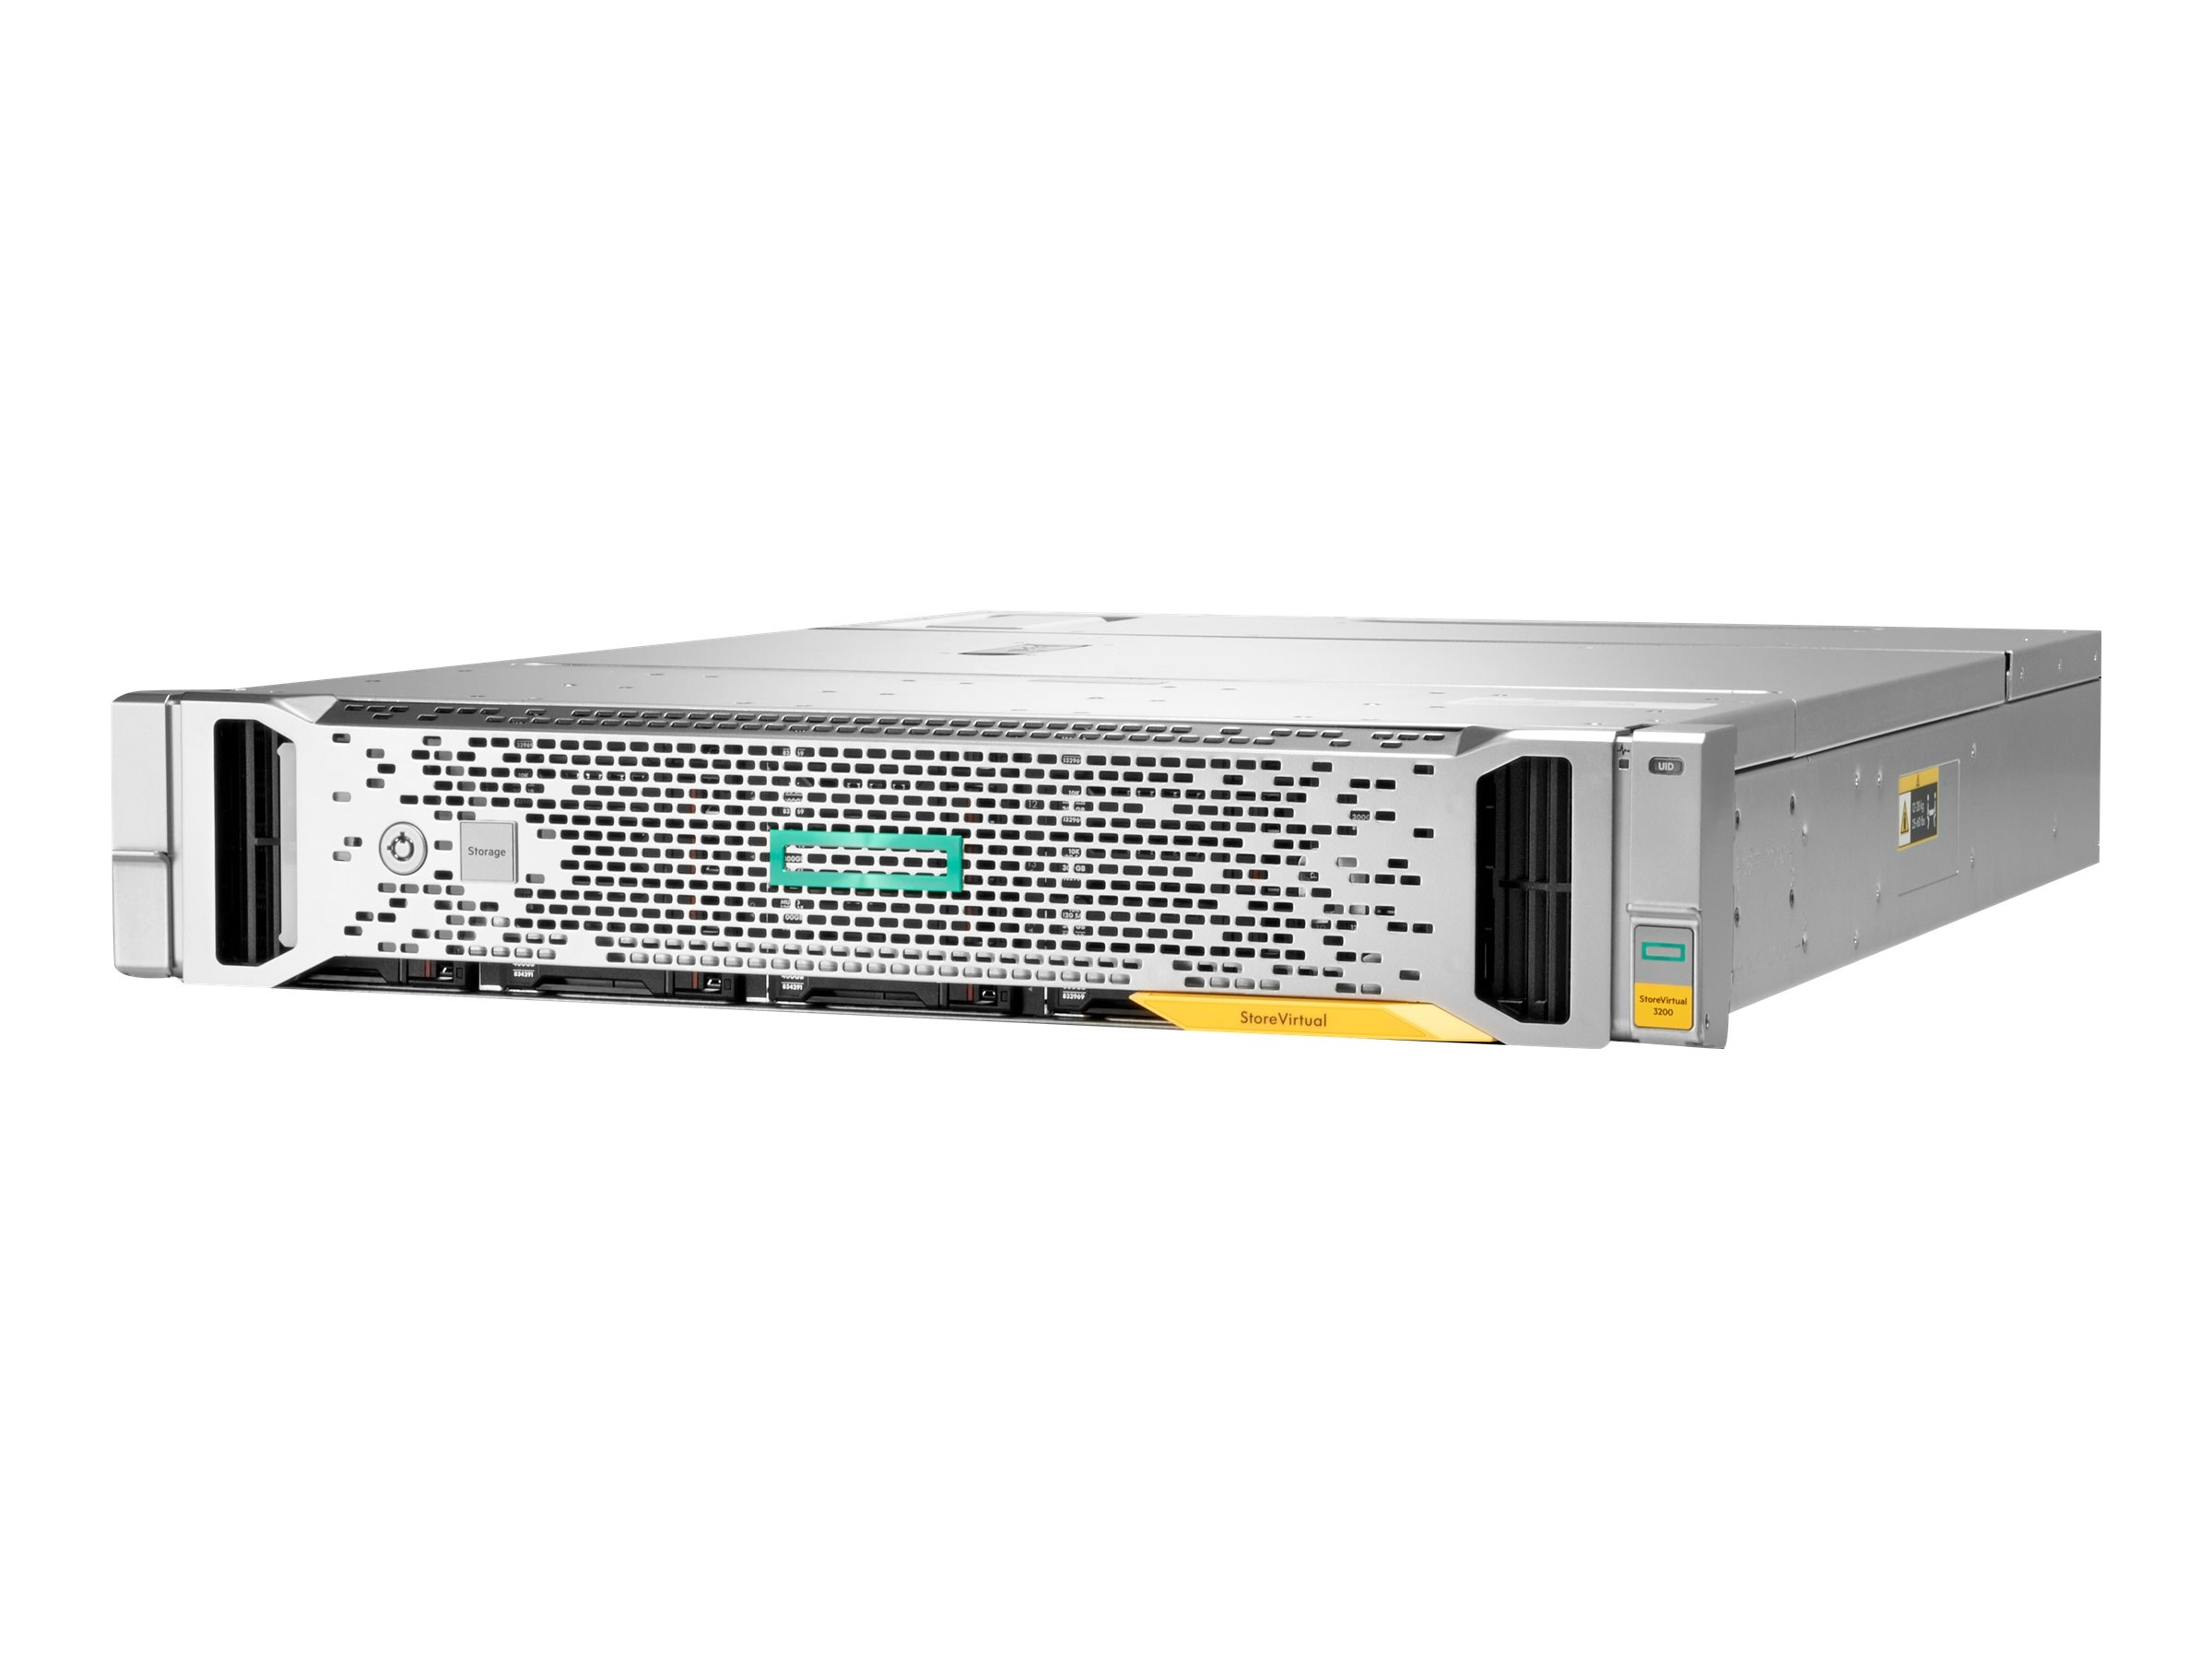 Hewlett Packard Enterprise P9M66SB Image 1